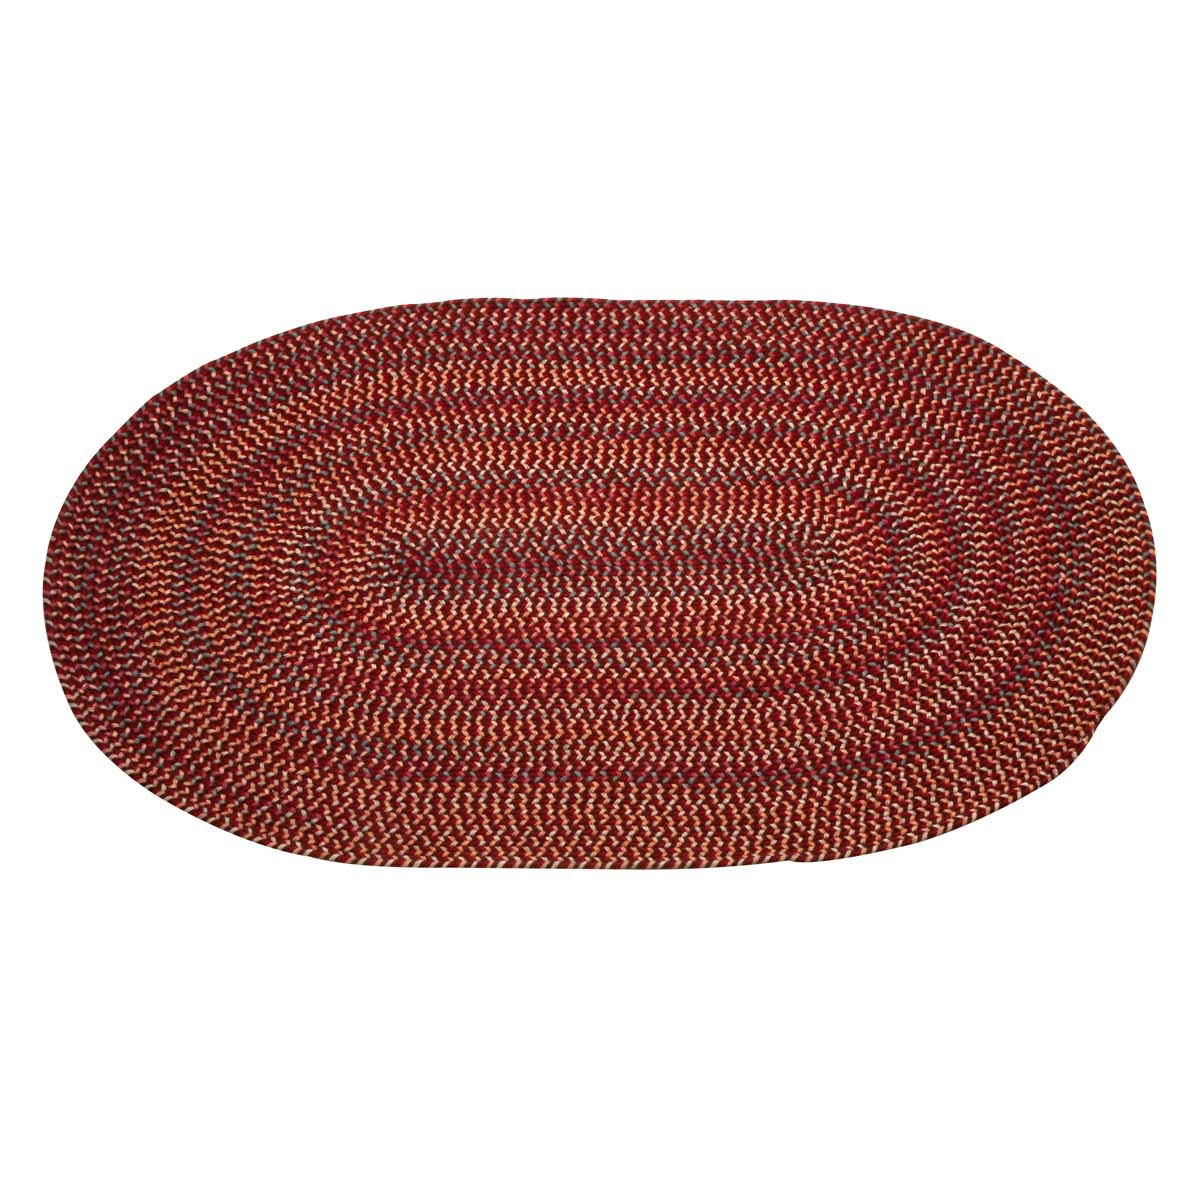 Oval Area Rug 6' x 4' Red Nylon | Renovator's Supply